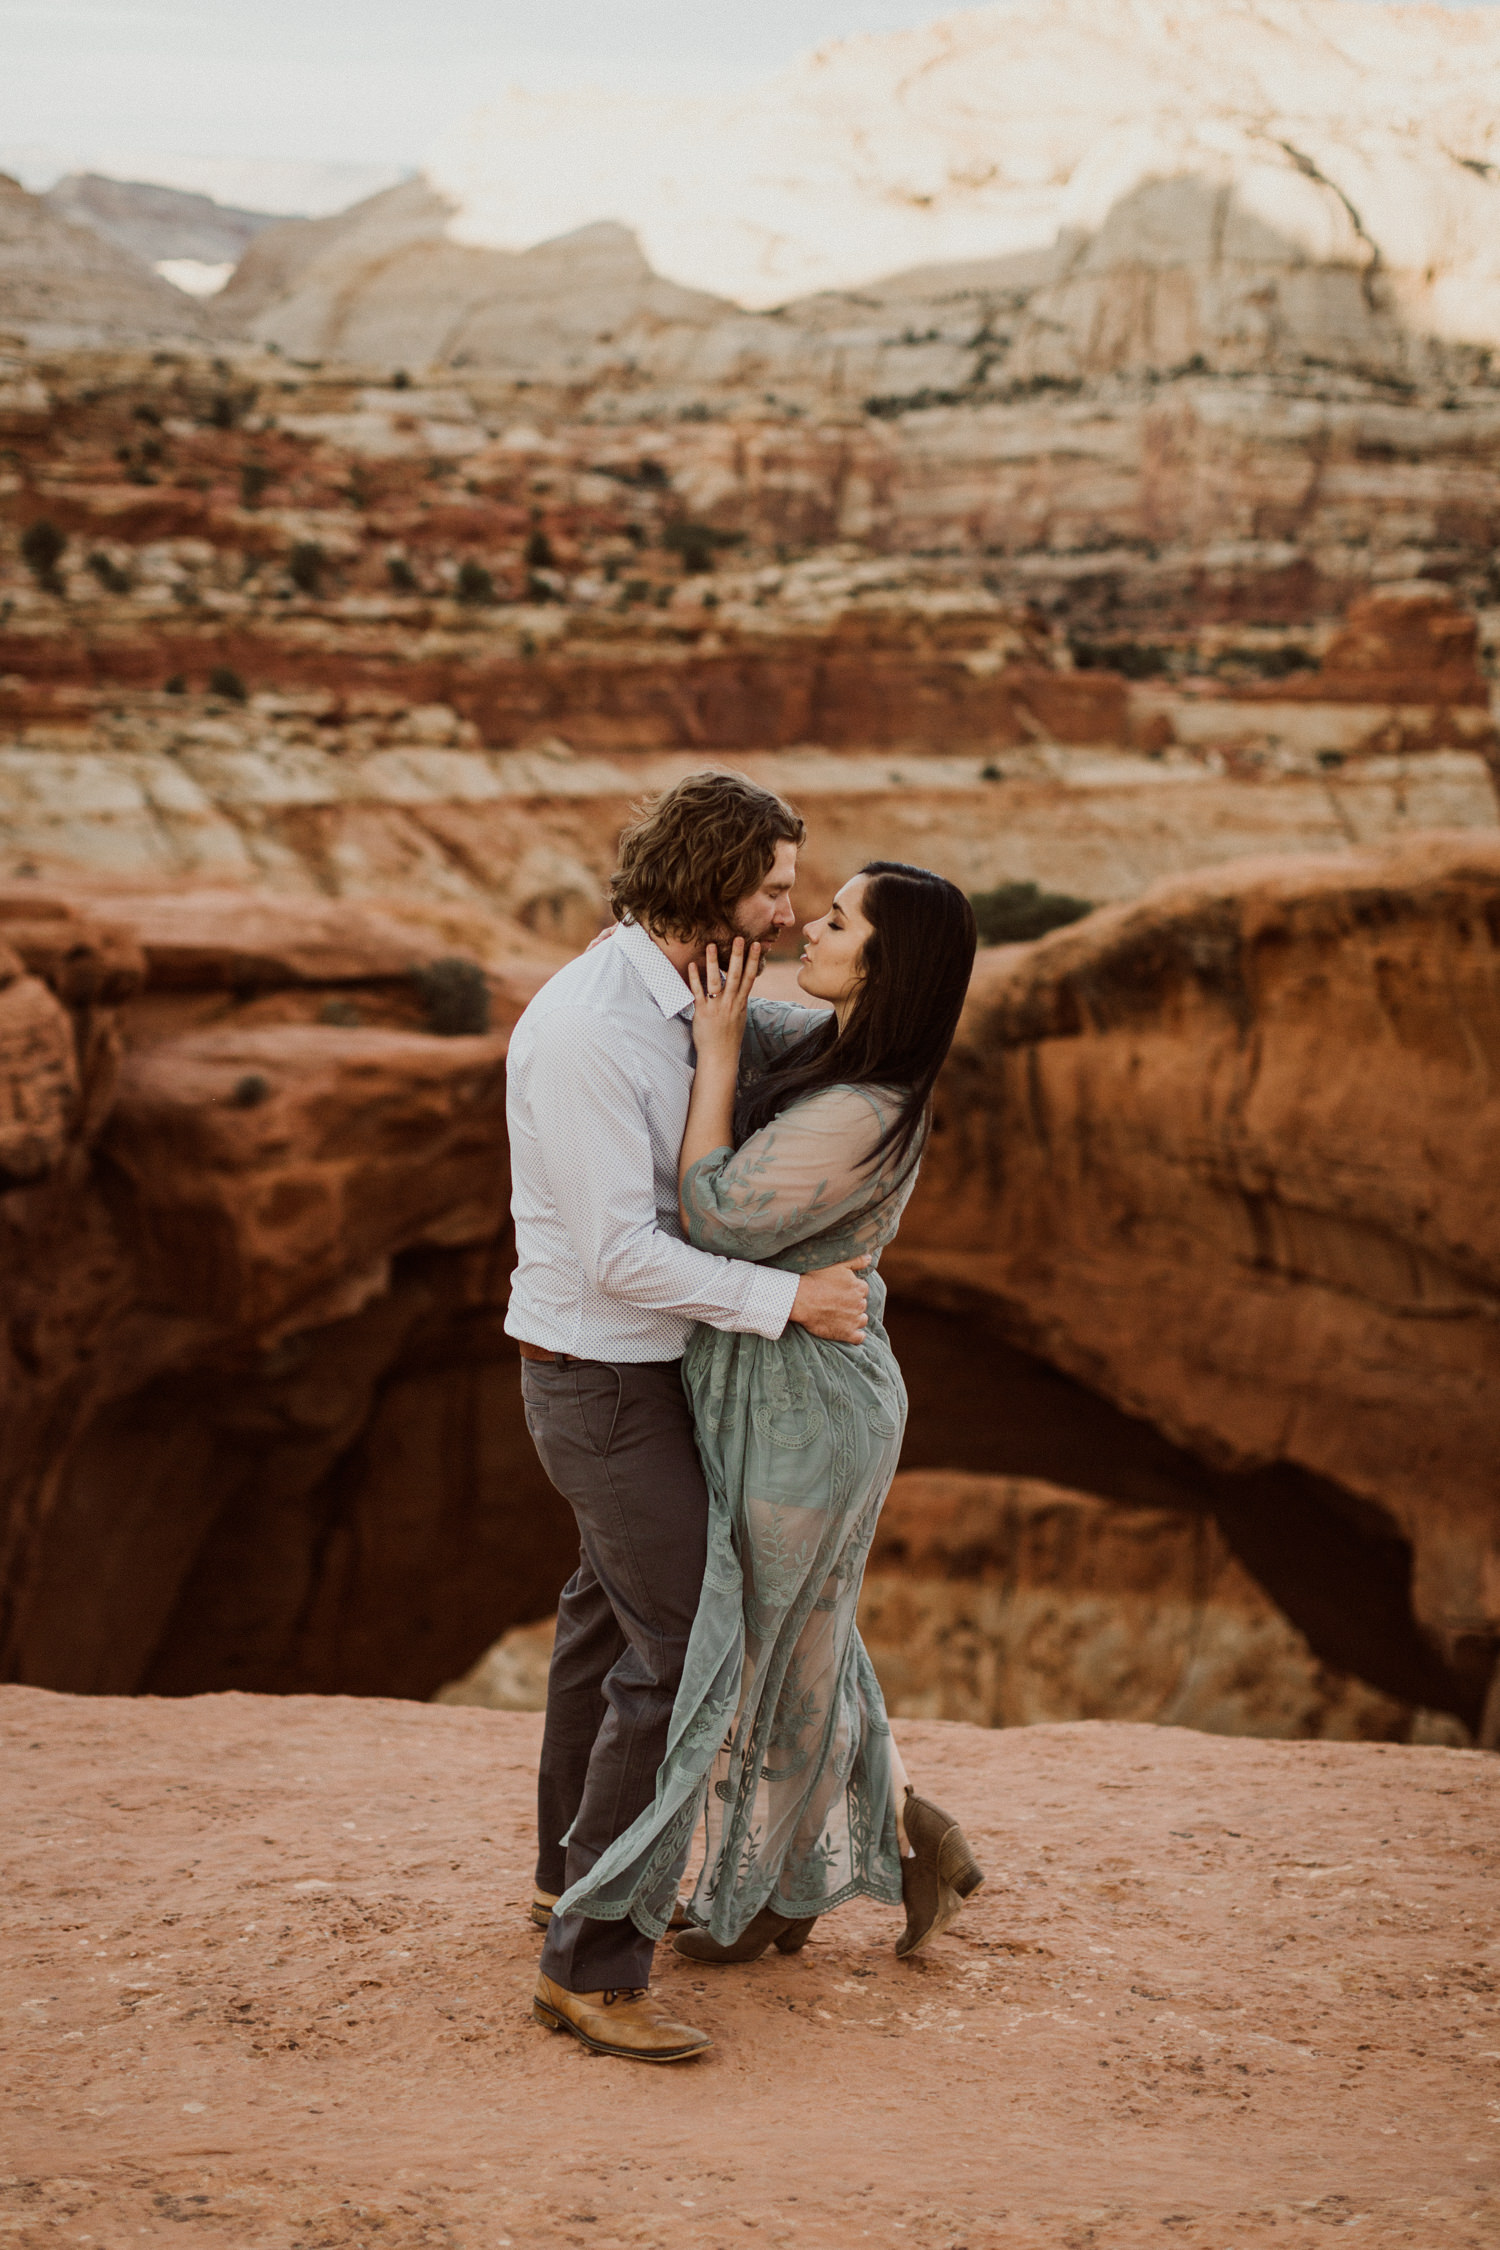 capitol-reef-national-park-engagements-47.jpg